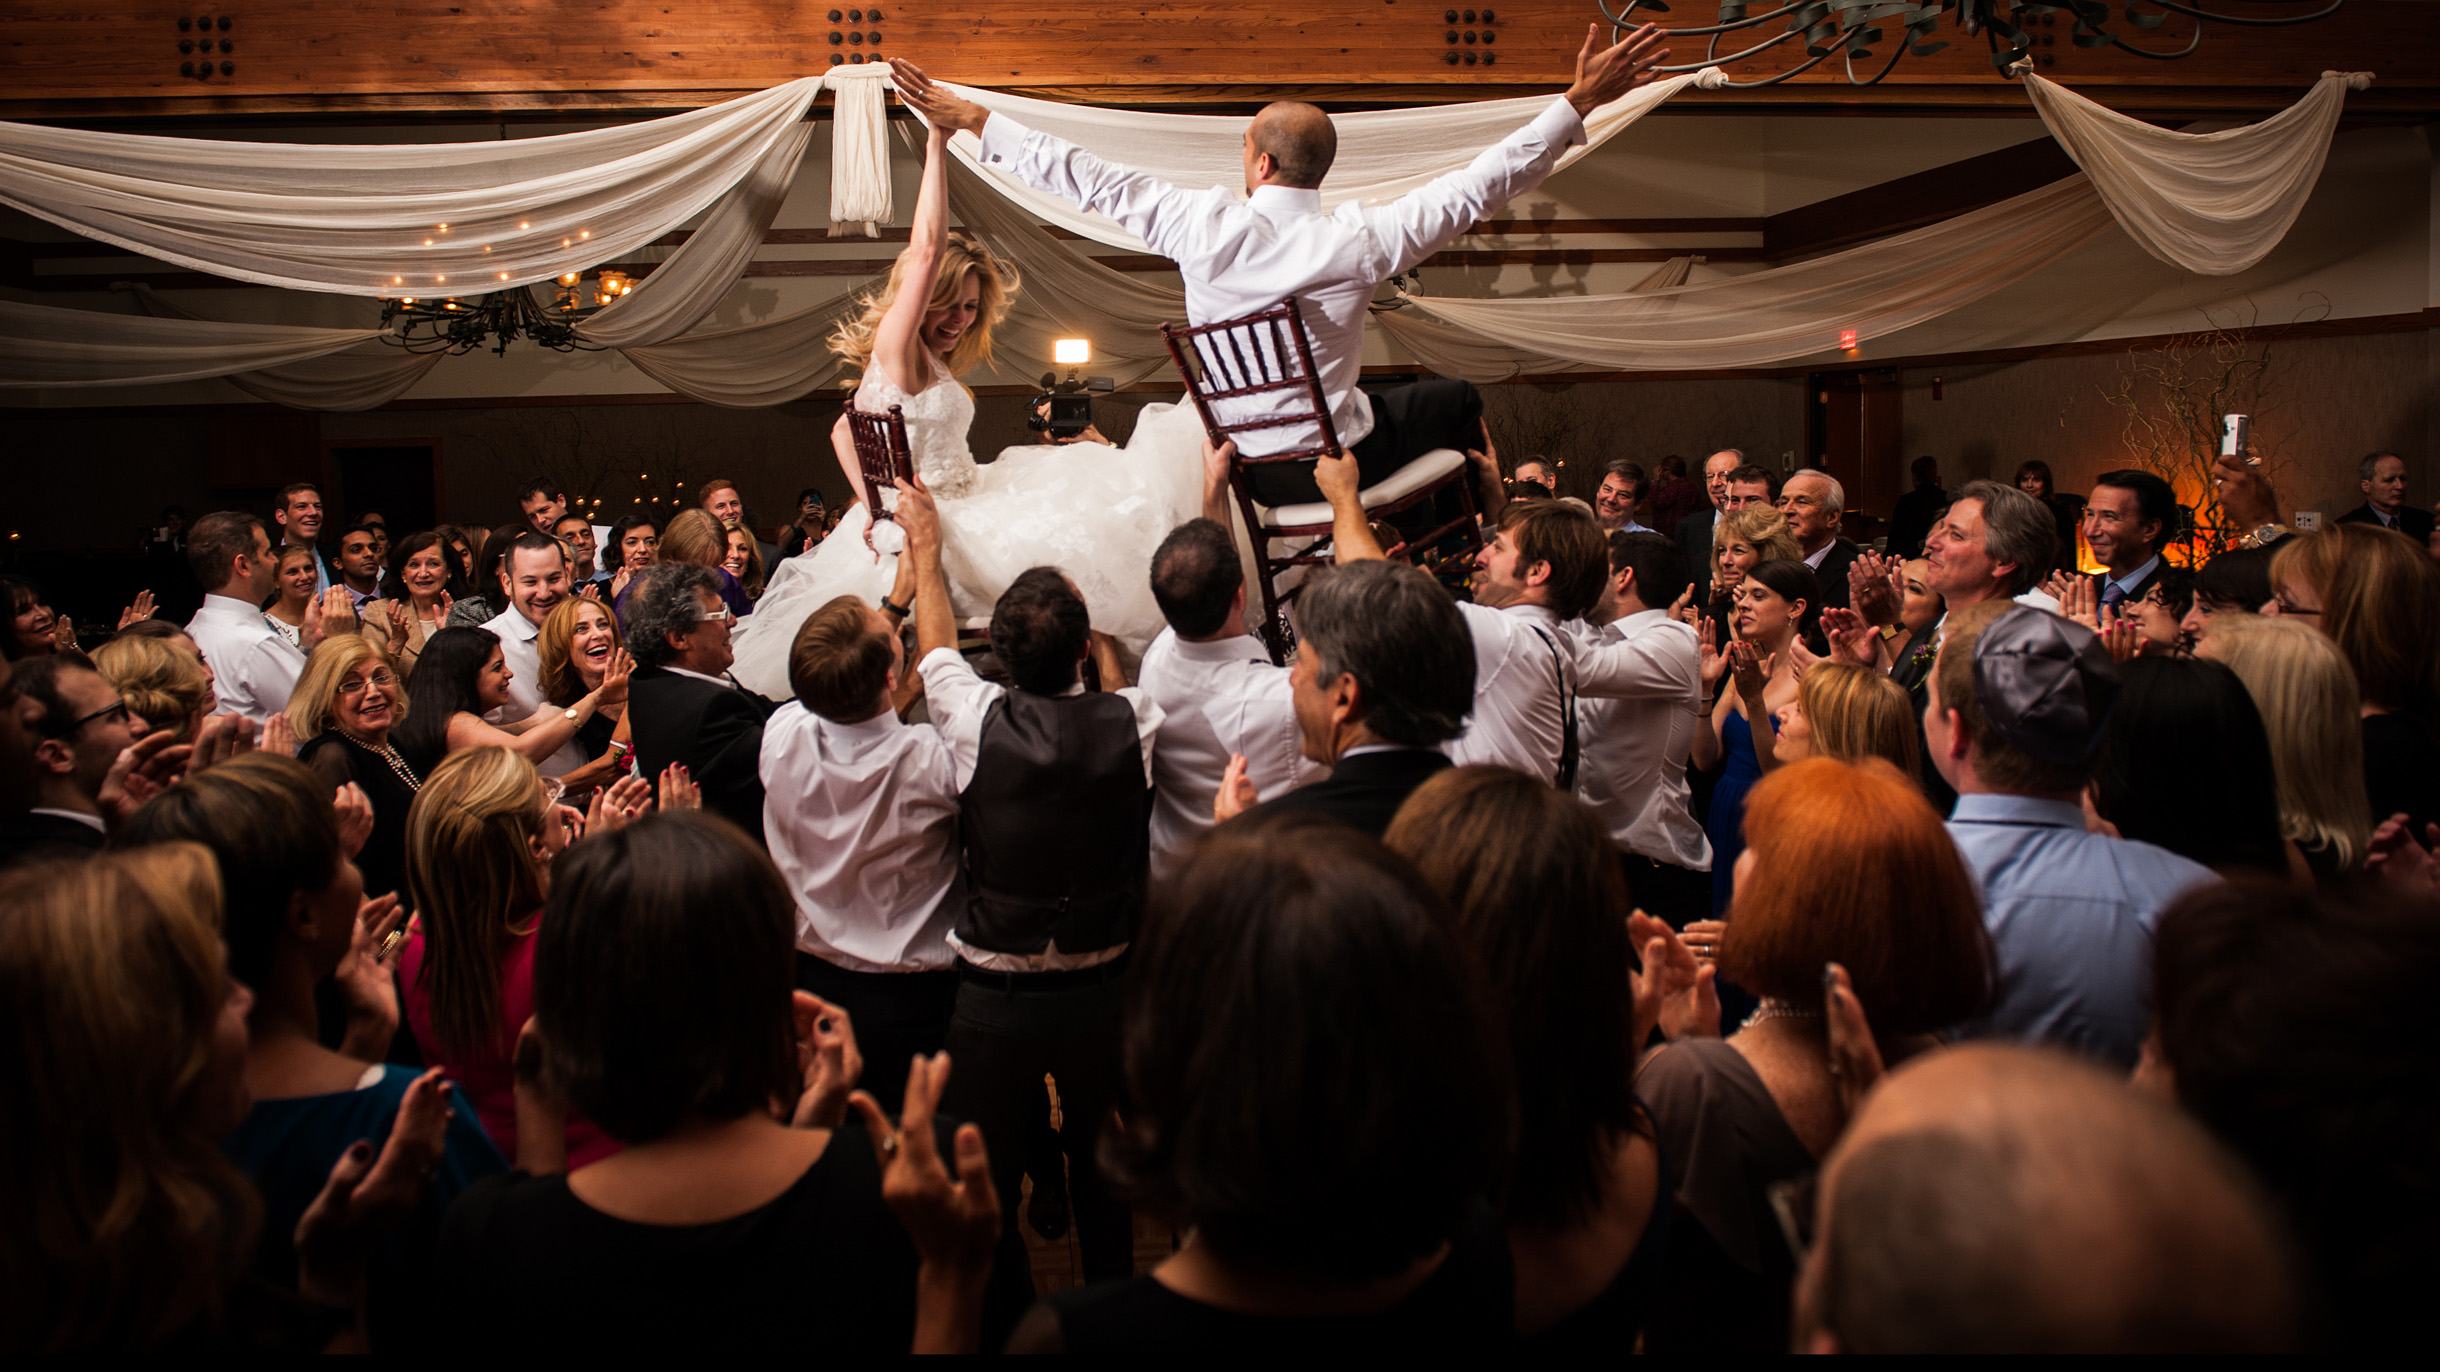 Bride and groom lifted up on chairs above guests during hora a jewish wedding reception tradition-328